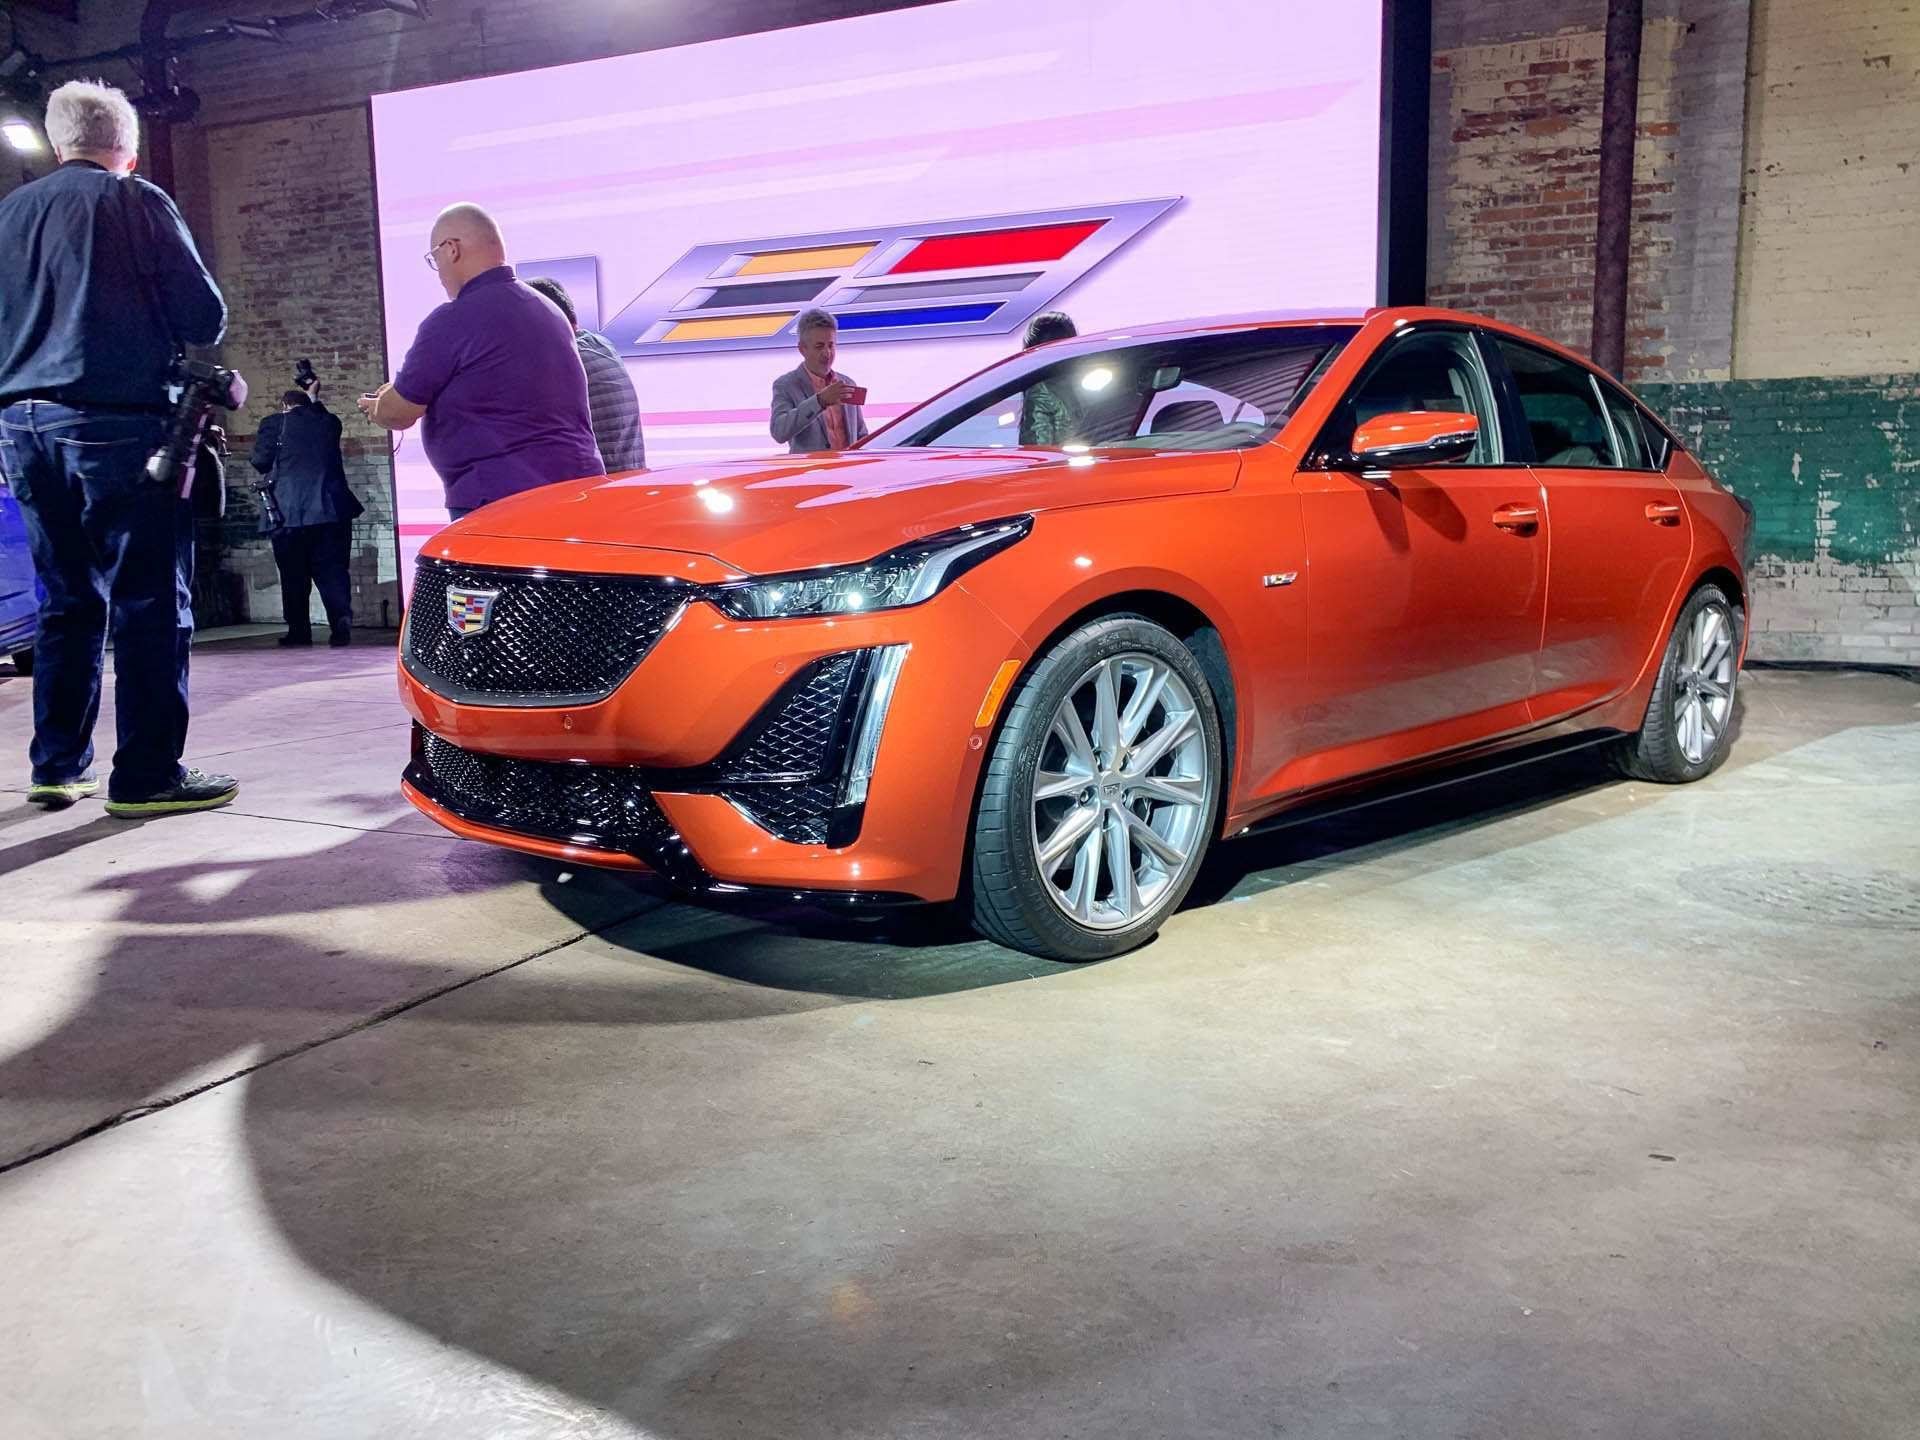 33 The Best 2020 Cadillac Ct5 V Wallpaper